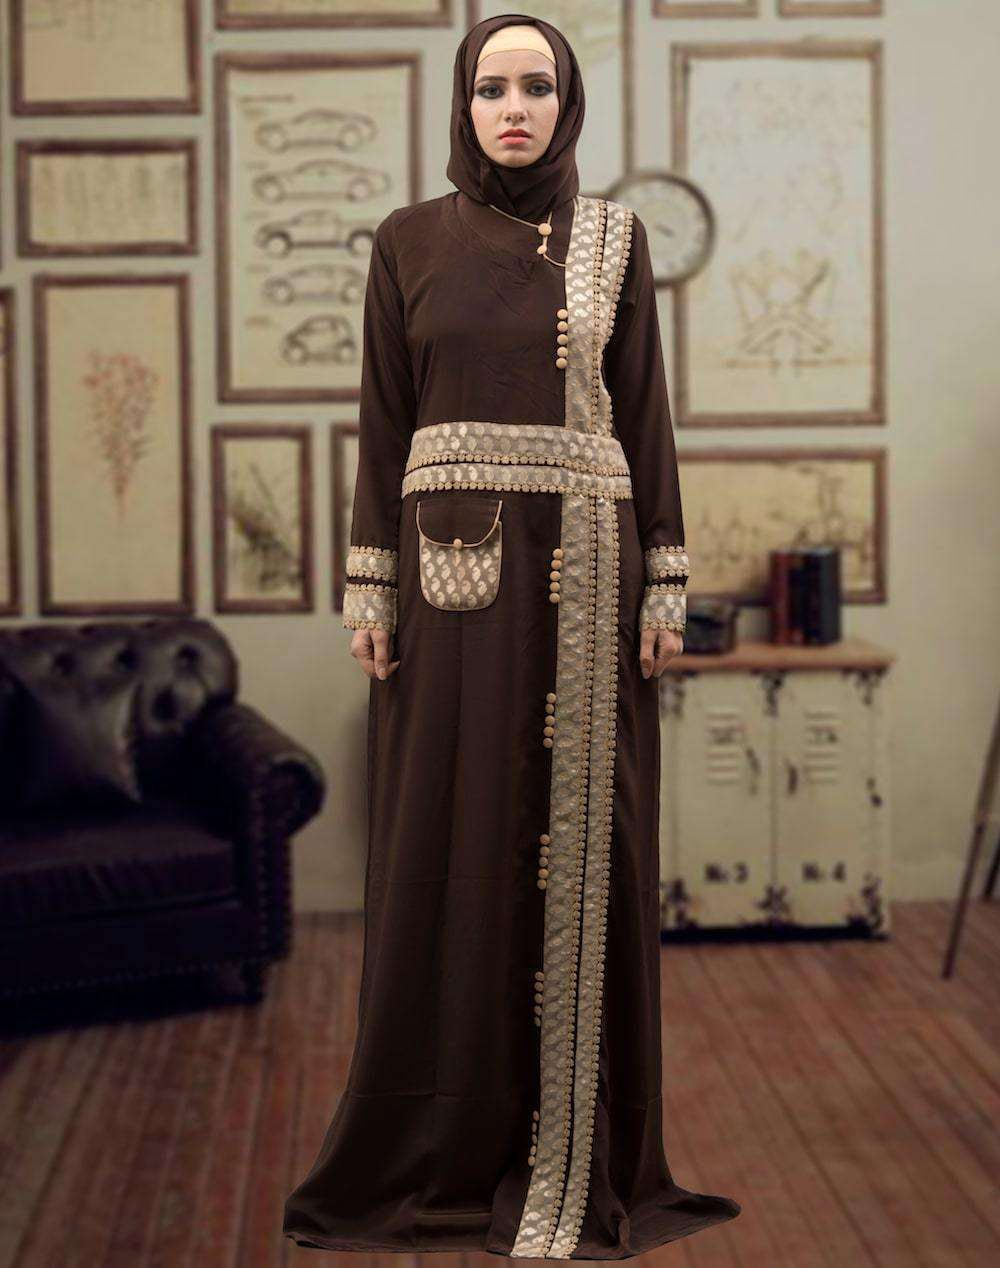 Trendy Brown and Beige Dubai Style Islamic Dress MYPF1313